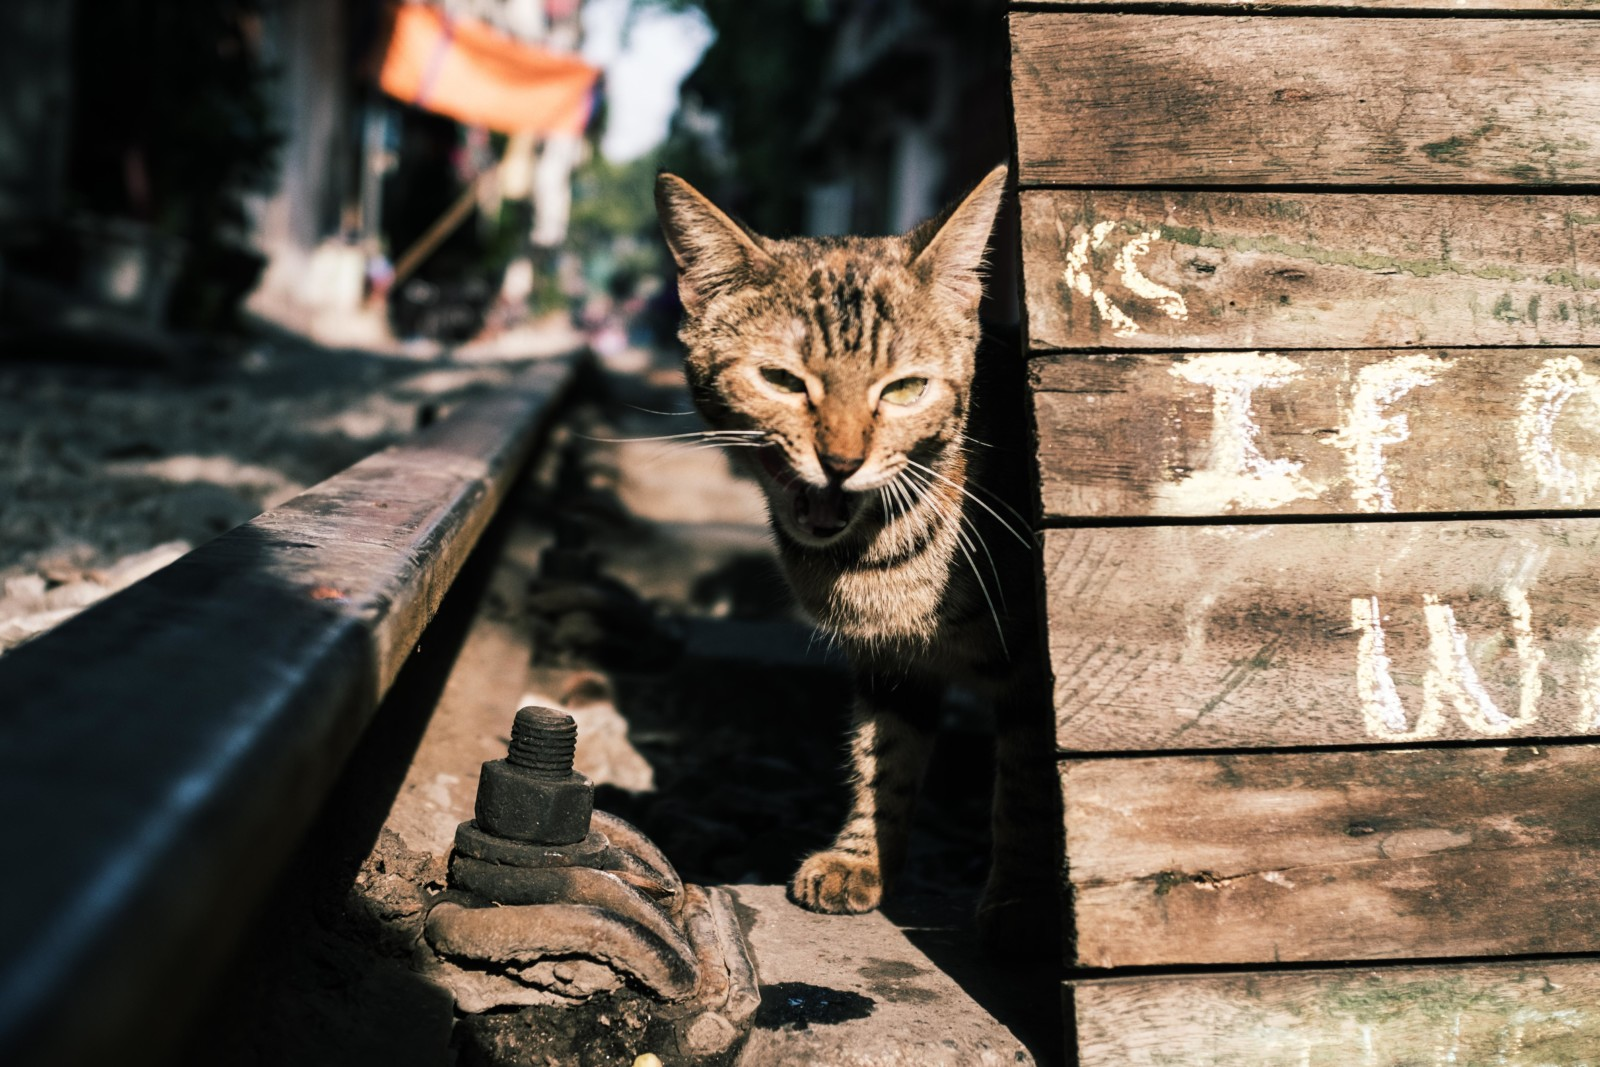 A Cat on a Railtrack